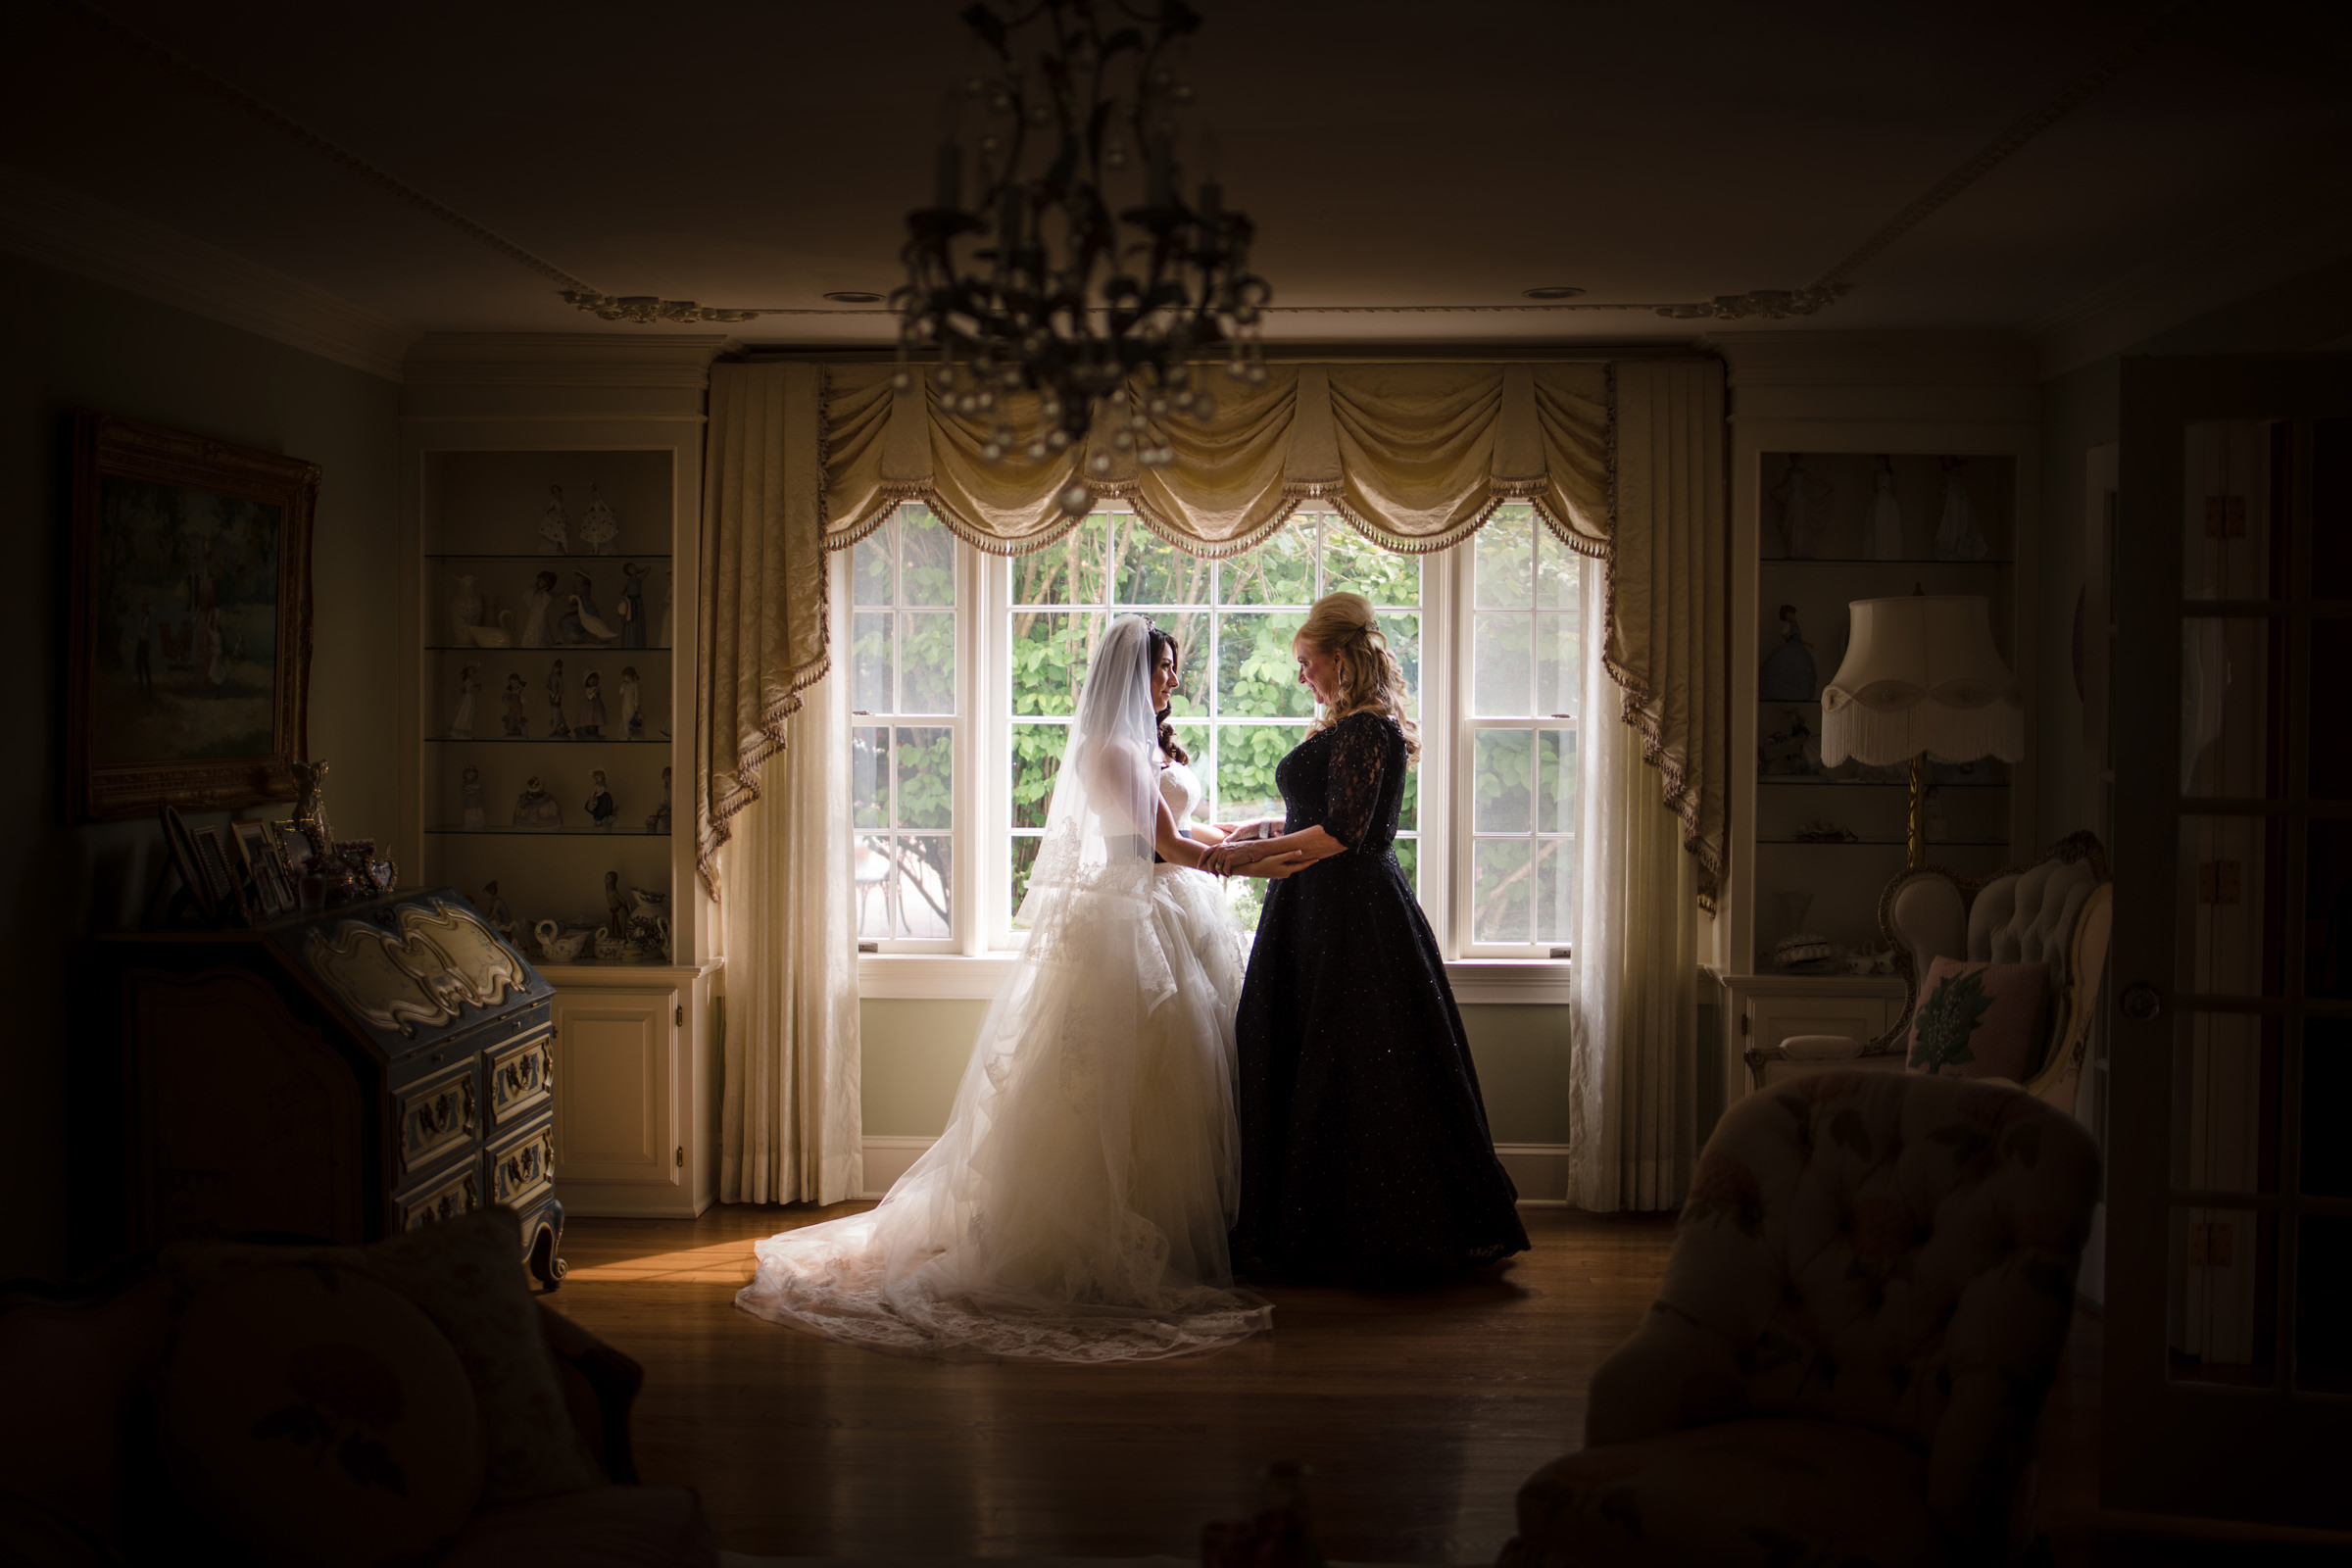 Bride and mom embrace - Photo by Susan Stripling Photography